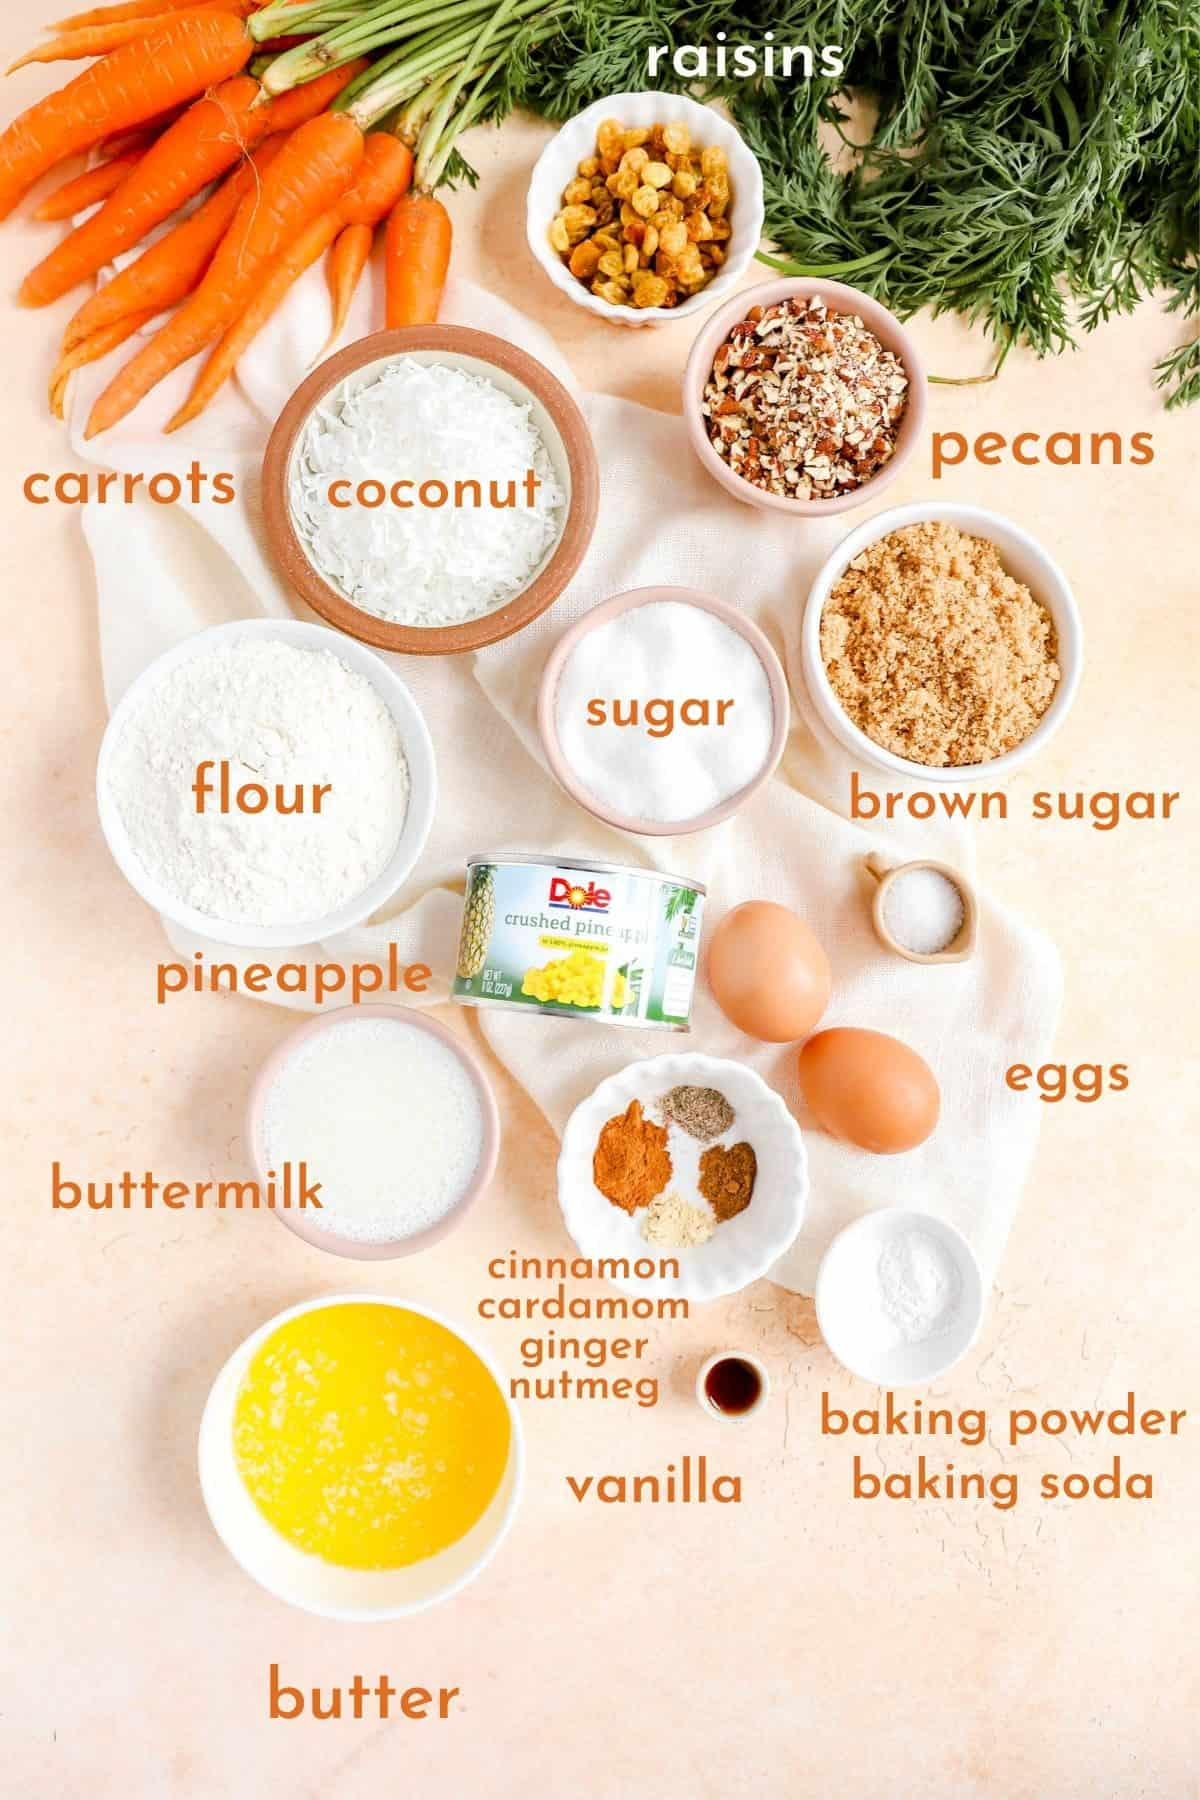 ingredients for carrot cake with pineapple all in separate bowls.